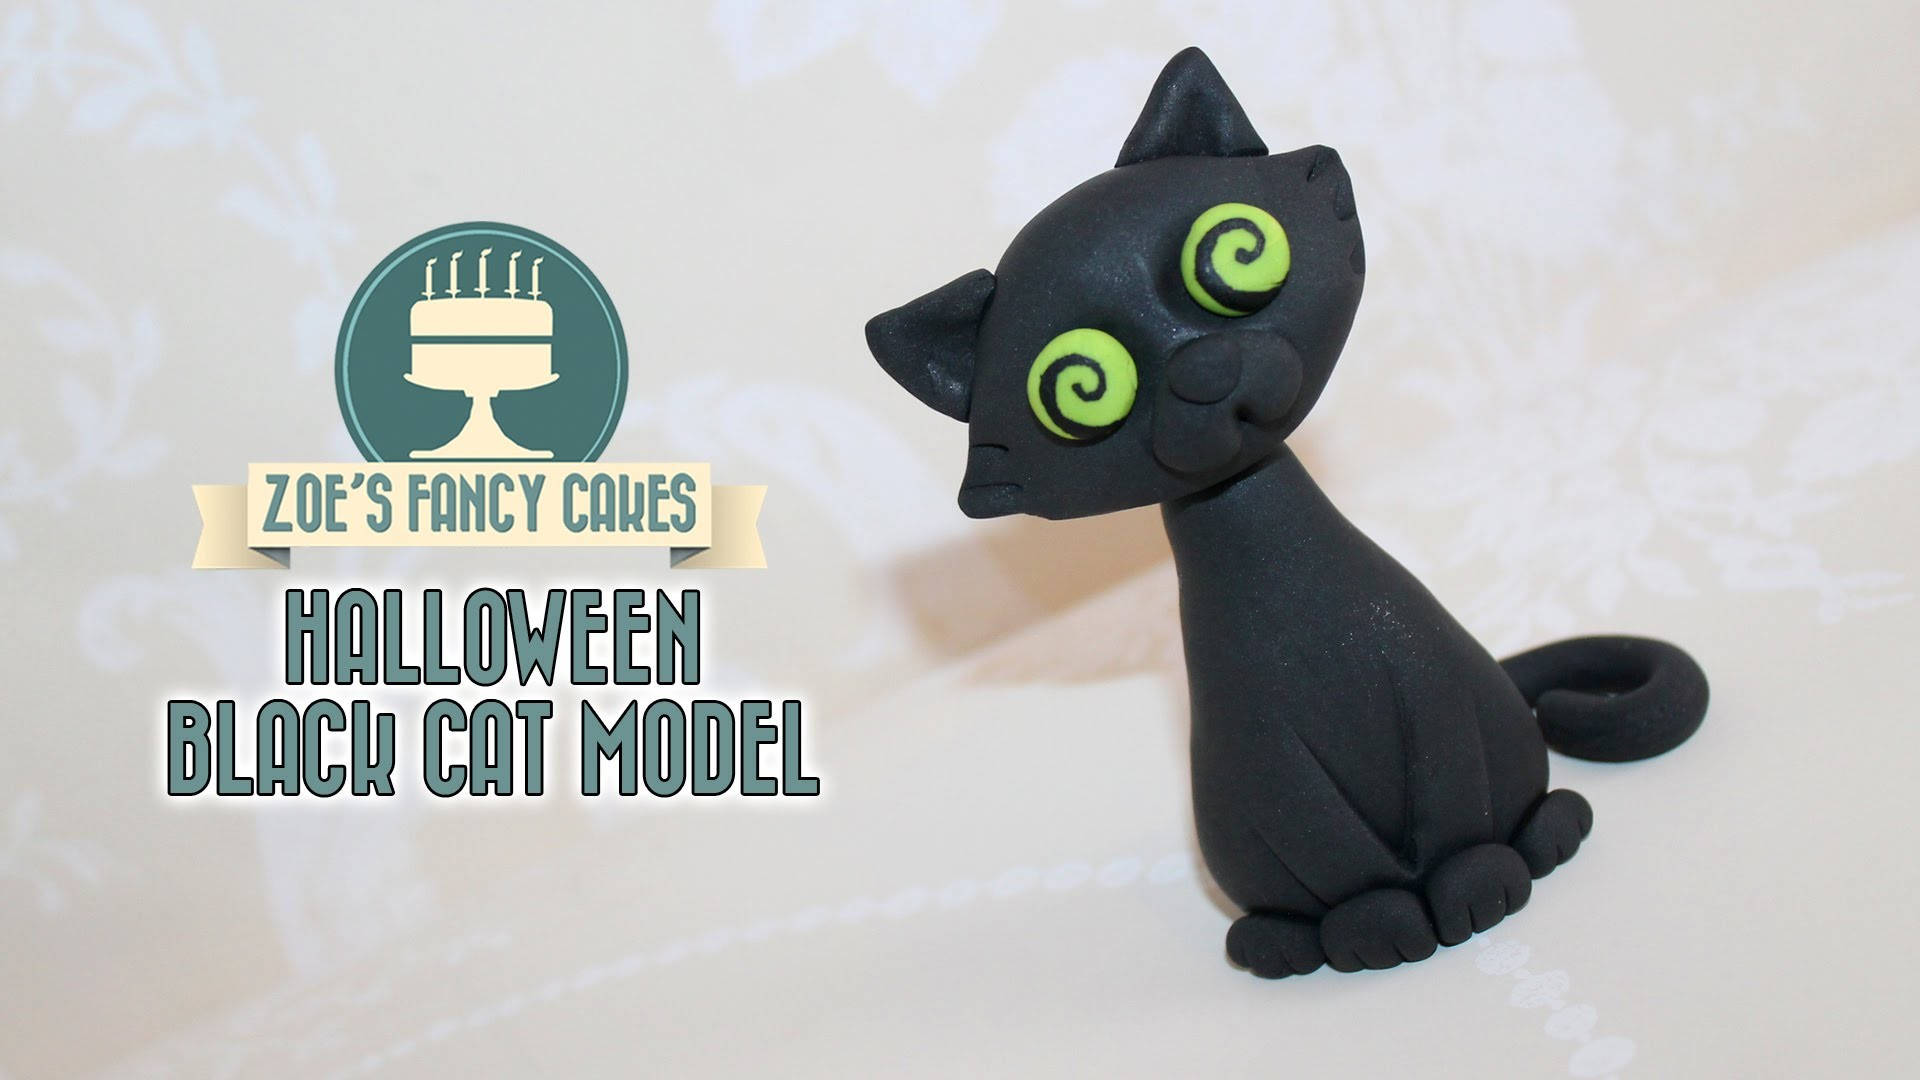 Black cat model : How to make a black cat cake topper